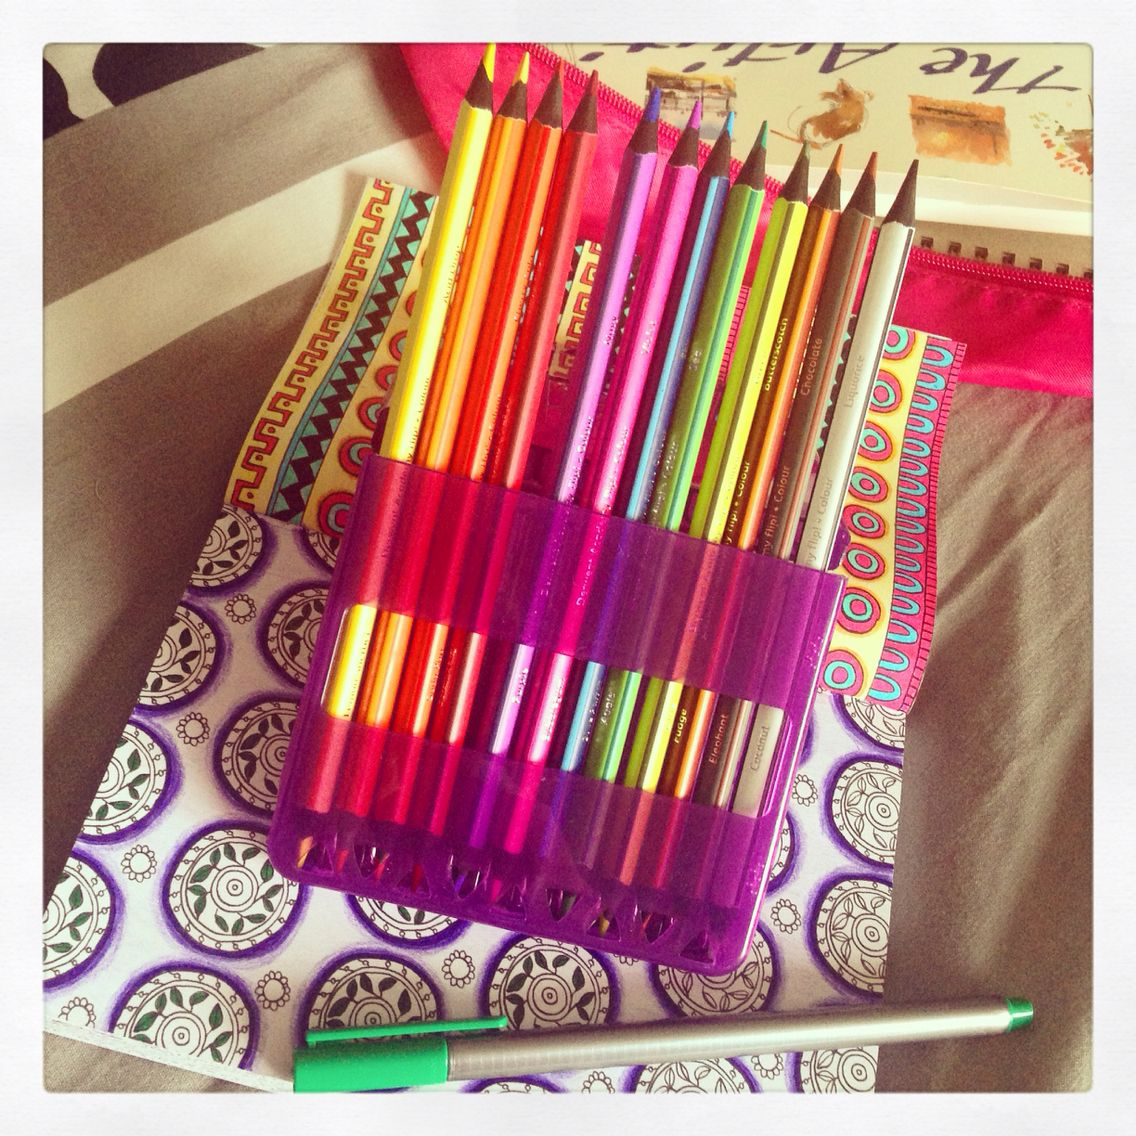 New Colouring Pencils With Images